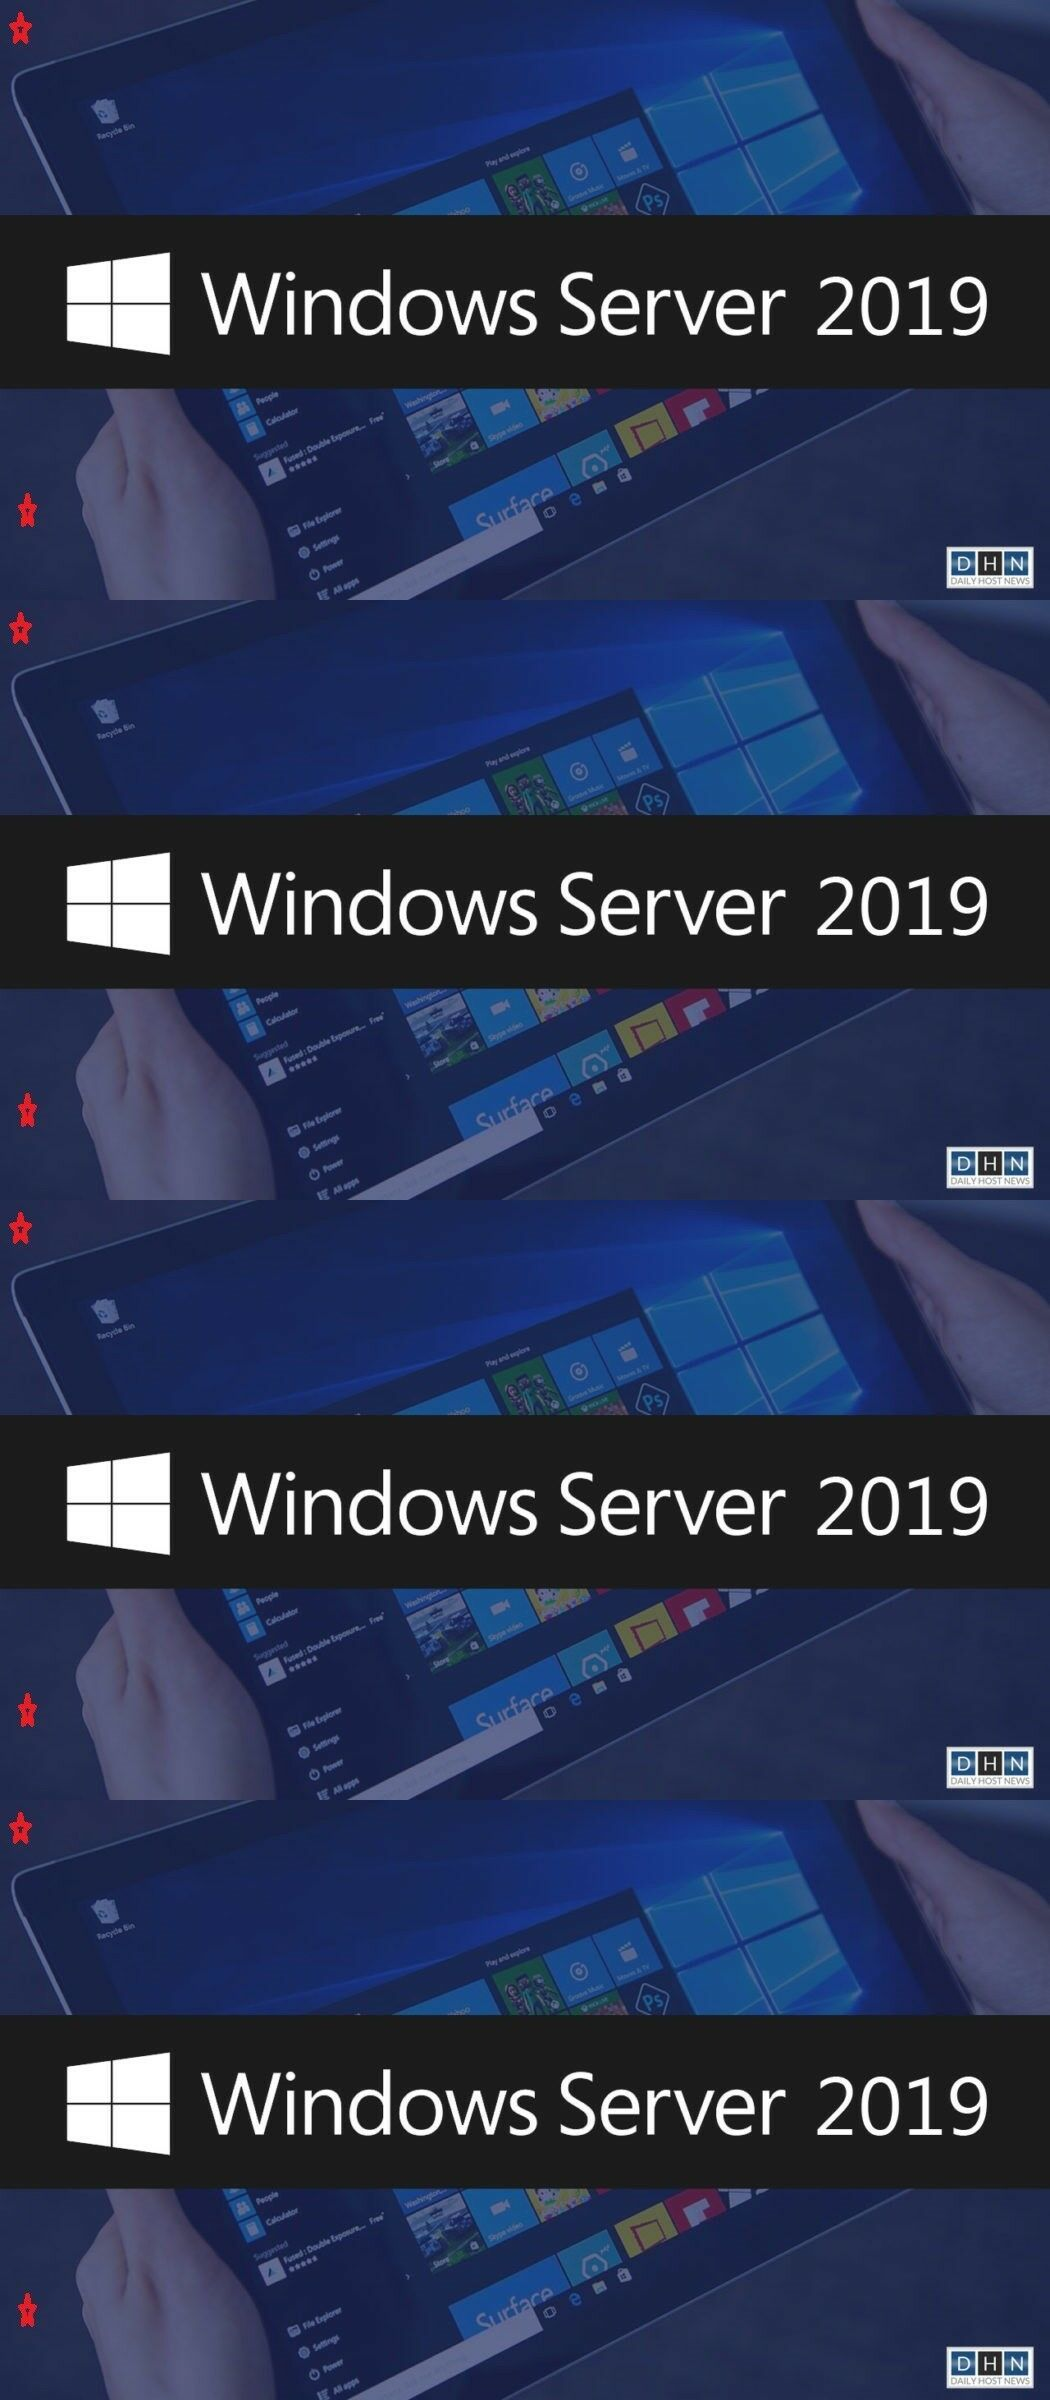 Servers Development and DBMS 80356: Windows Server 2019 Rds Remote